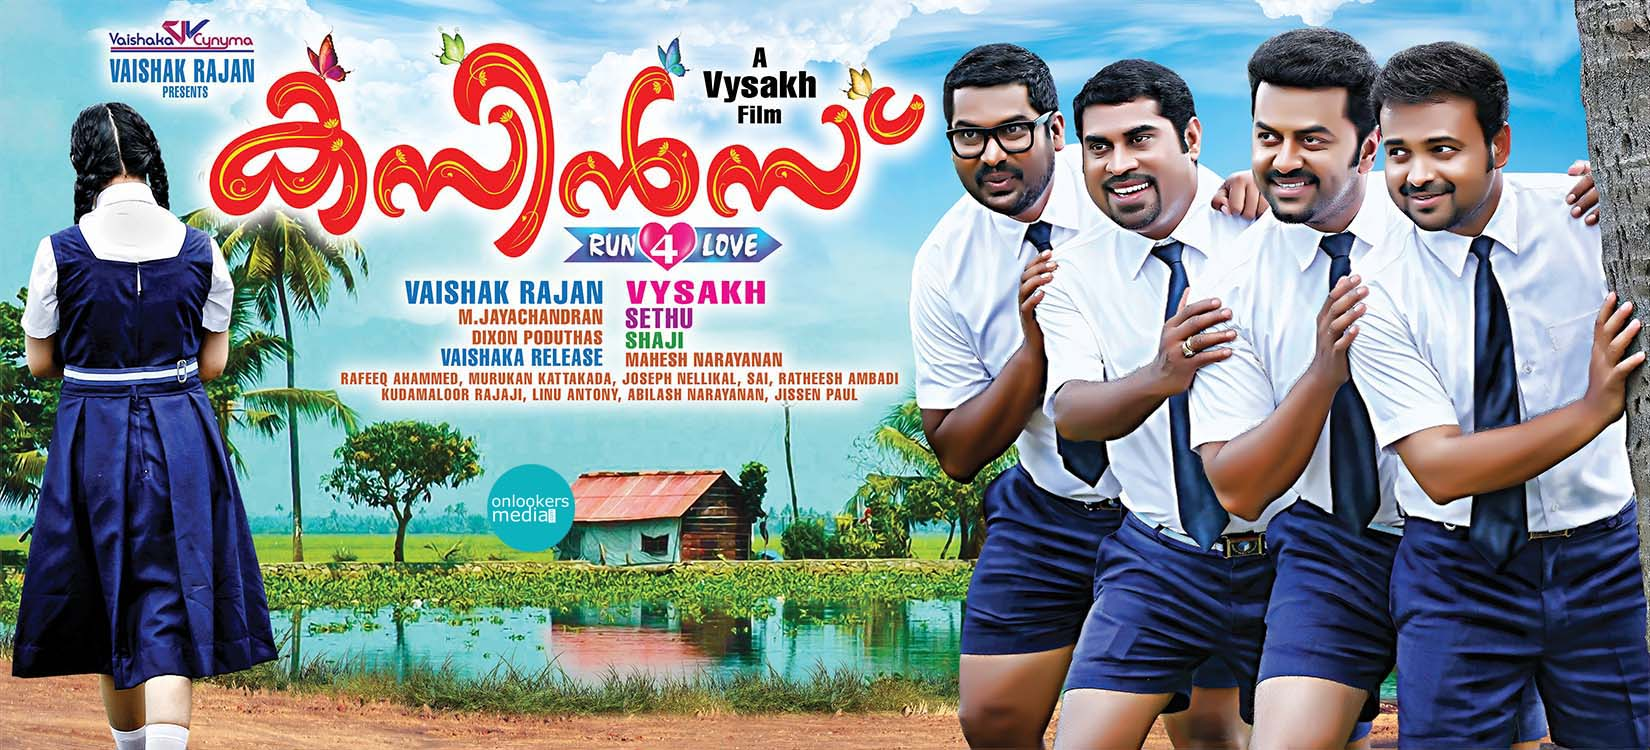 http://onlookersmedia.in/wp-content/uploads/2014/12/Cousins-Posters-Stills-Images-Review-Report-Collection-Kunchacko-Boban-Indrajith-Nisha-Agarwal-Vedhika-Miya-Onlookers-Media-9.jpg